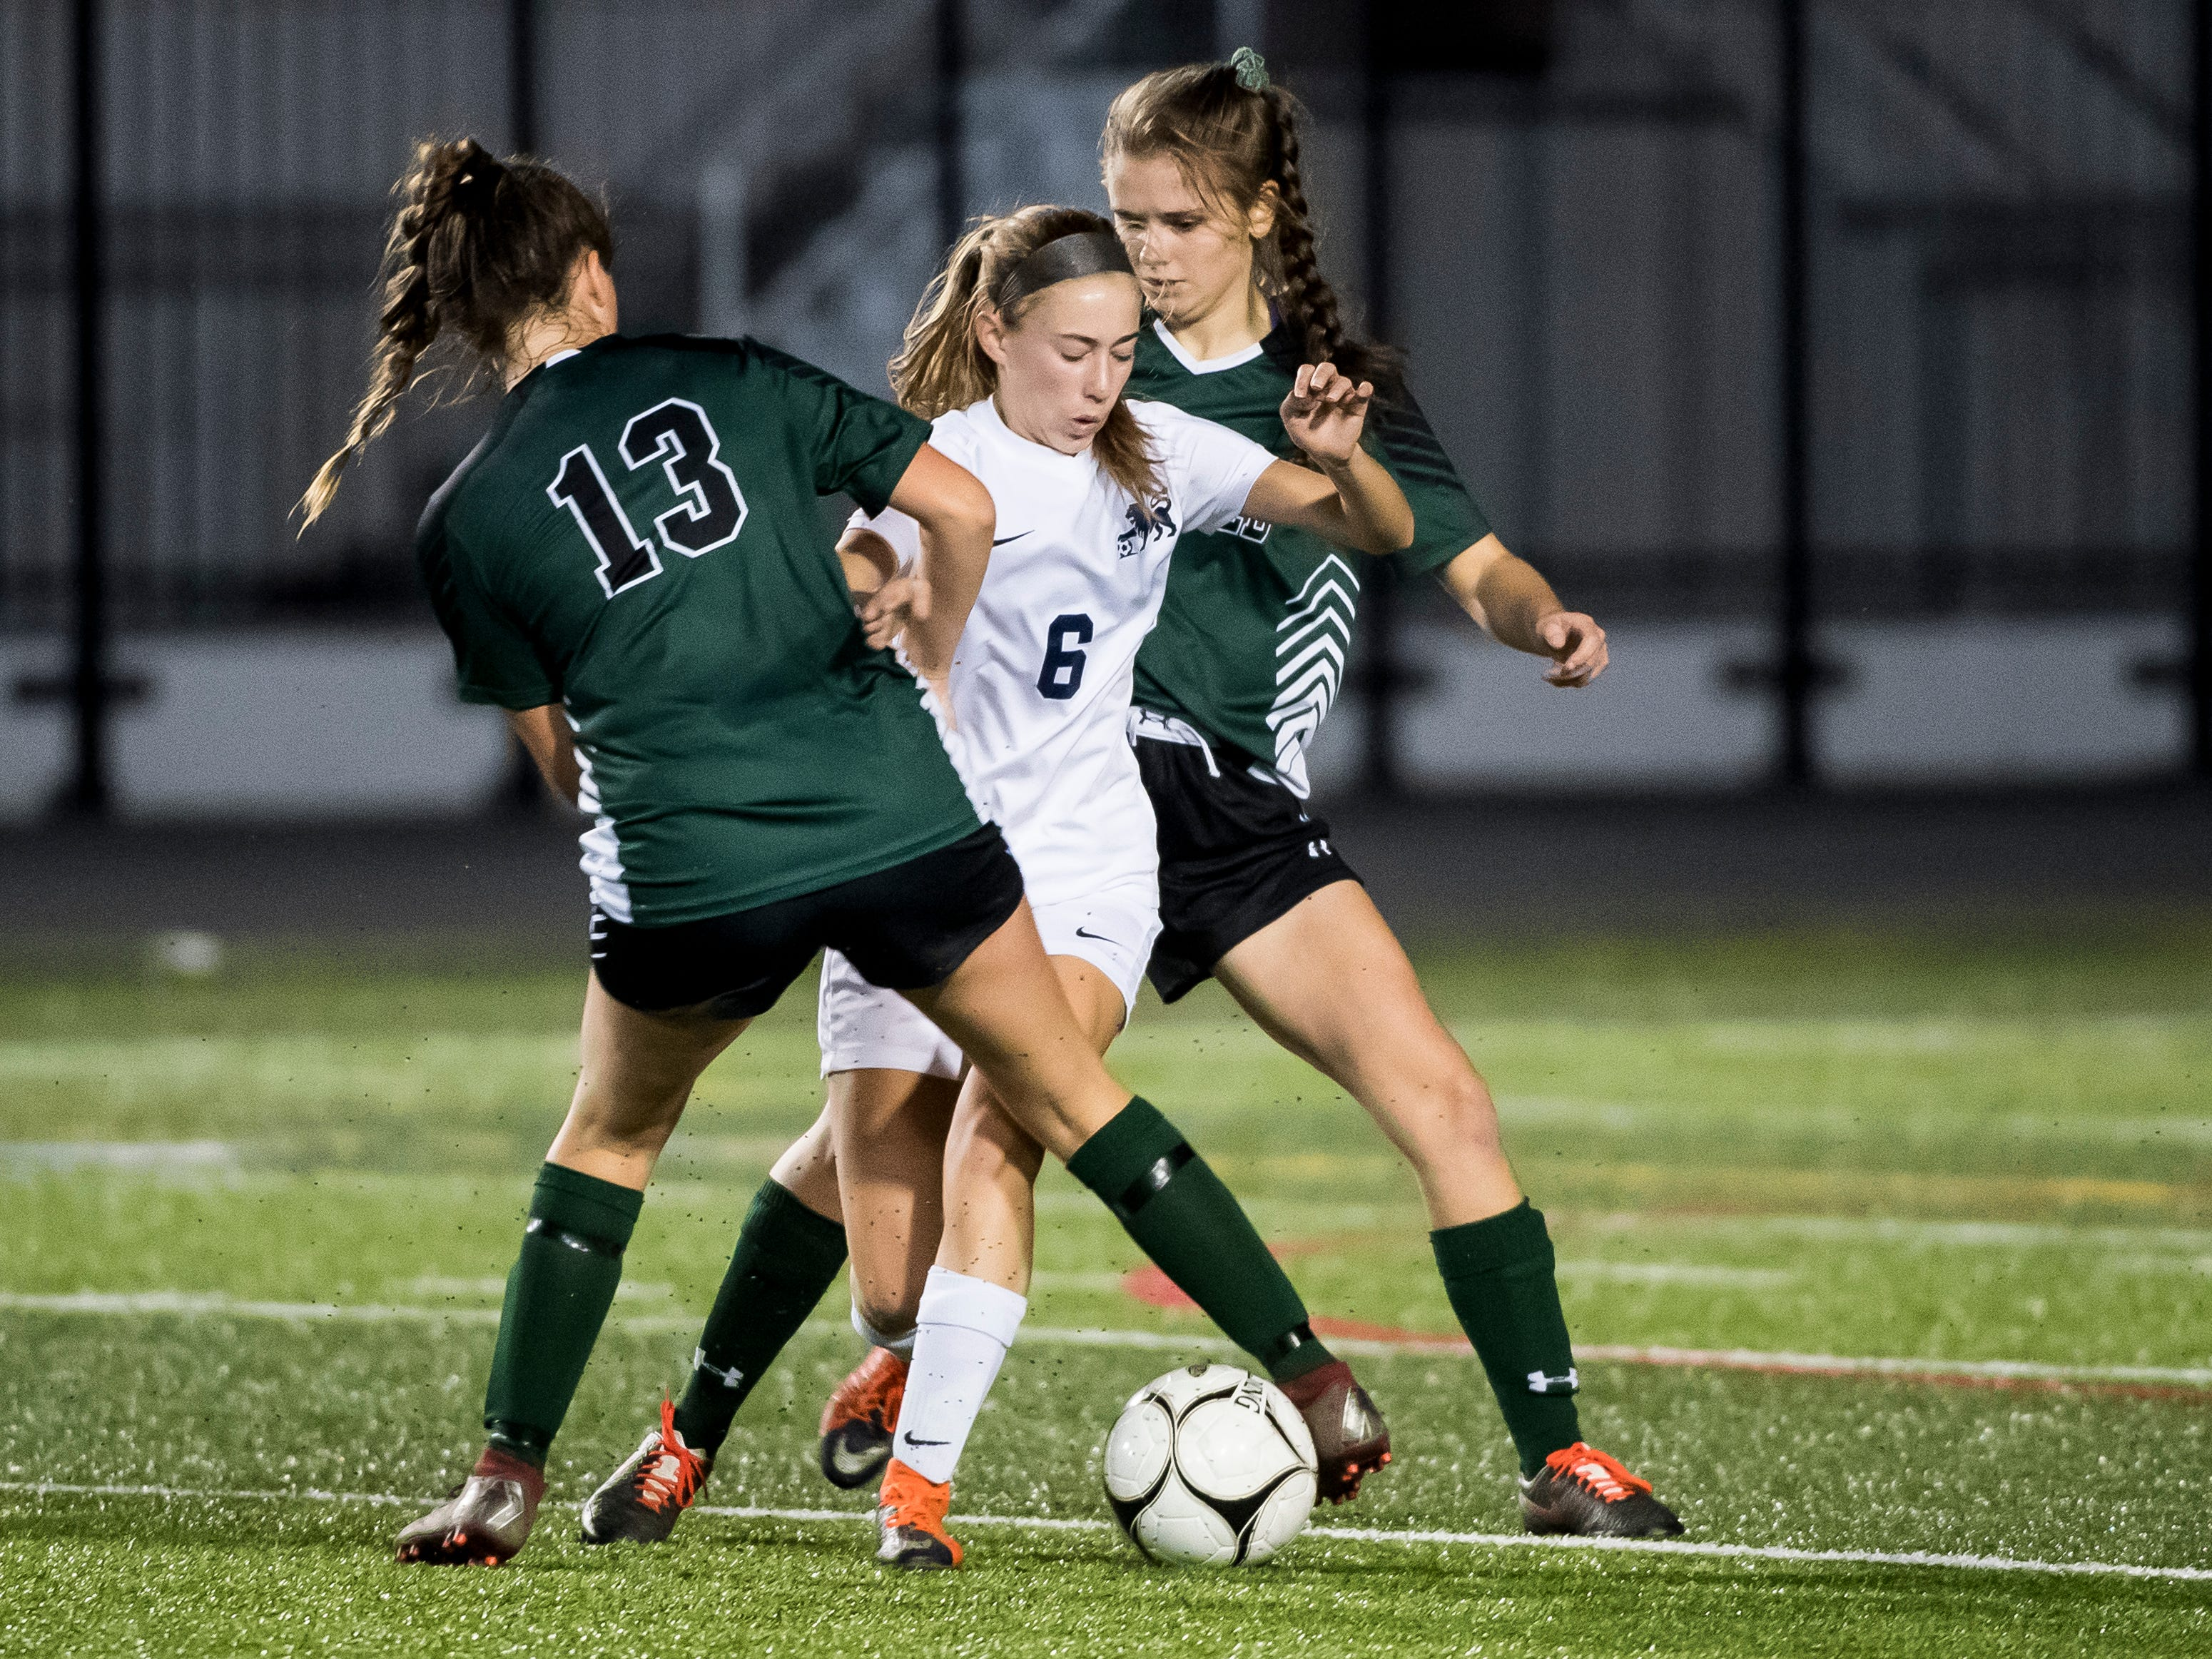 Camp Hill's Ava Brackett (6) gets trapped between Fairfield's Honey Strosnider (13) and Aliyah Hillman during the PIAA District III Class A championship game at Hershey Park Stadium on Wednesday, October 31, 2018. The Knights fell 1-0.